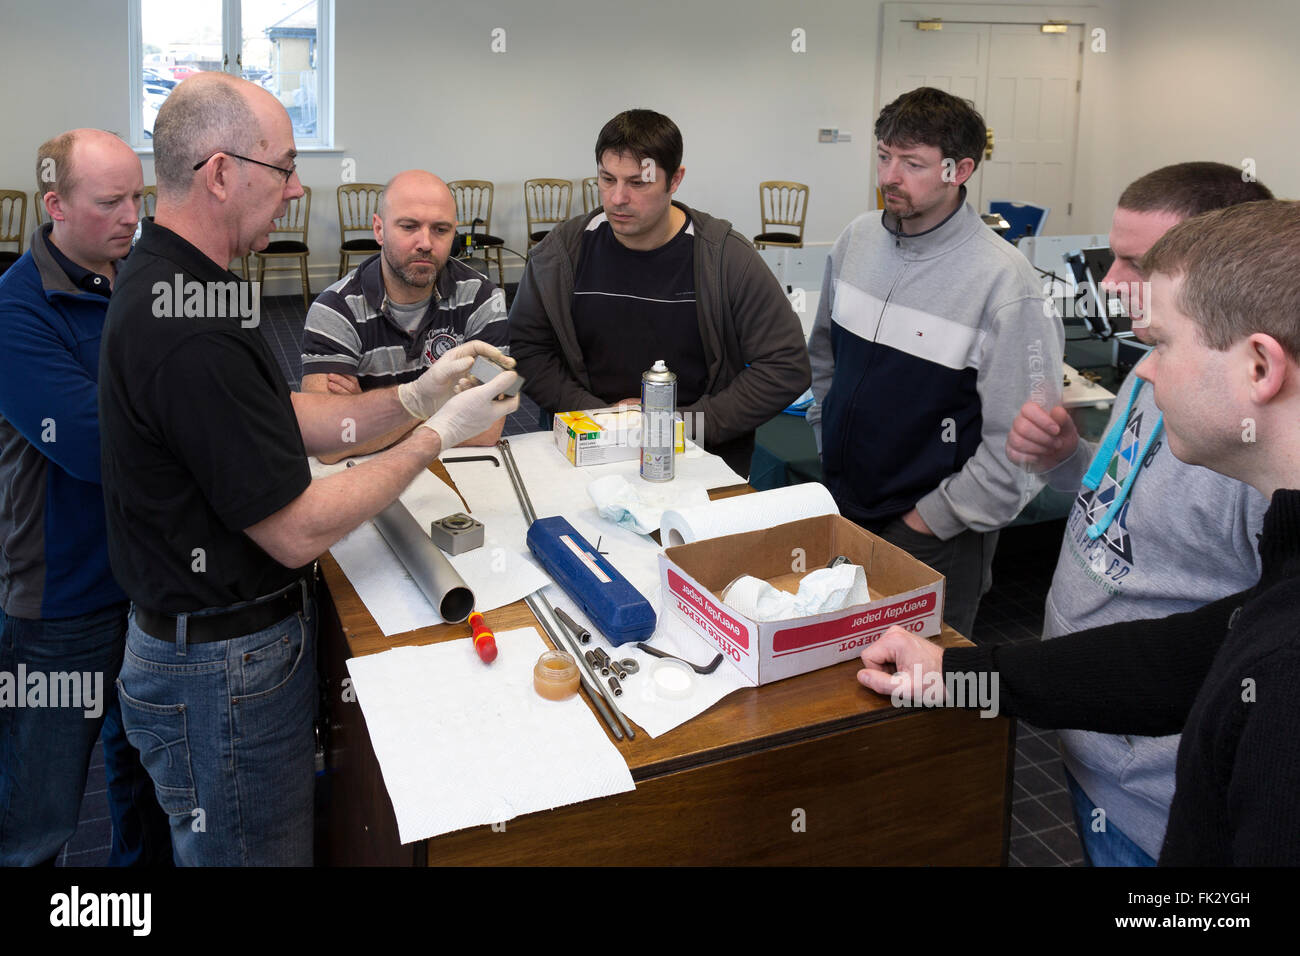 Adult men being taught engineering and pneumatics by qualified engineer instructor. - Stock Image